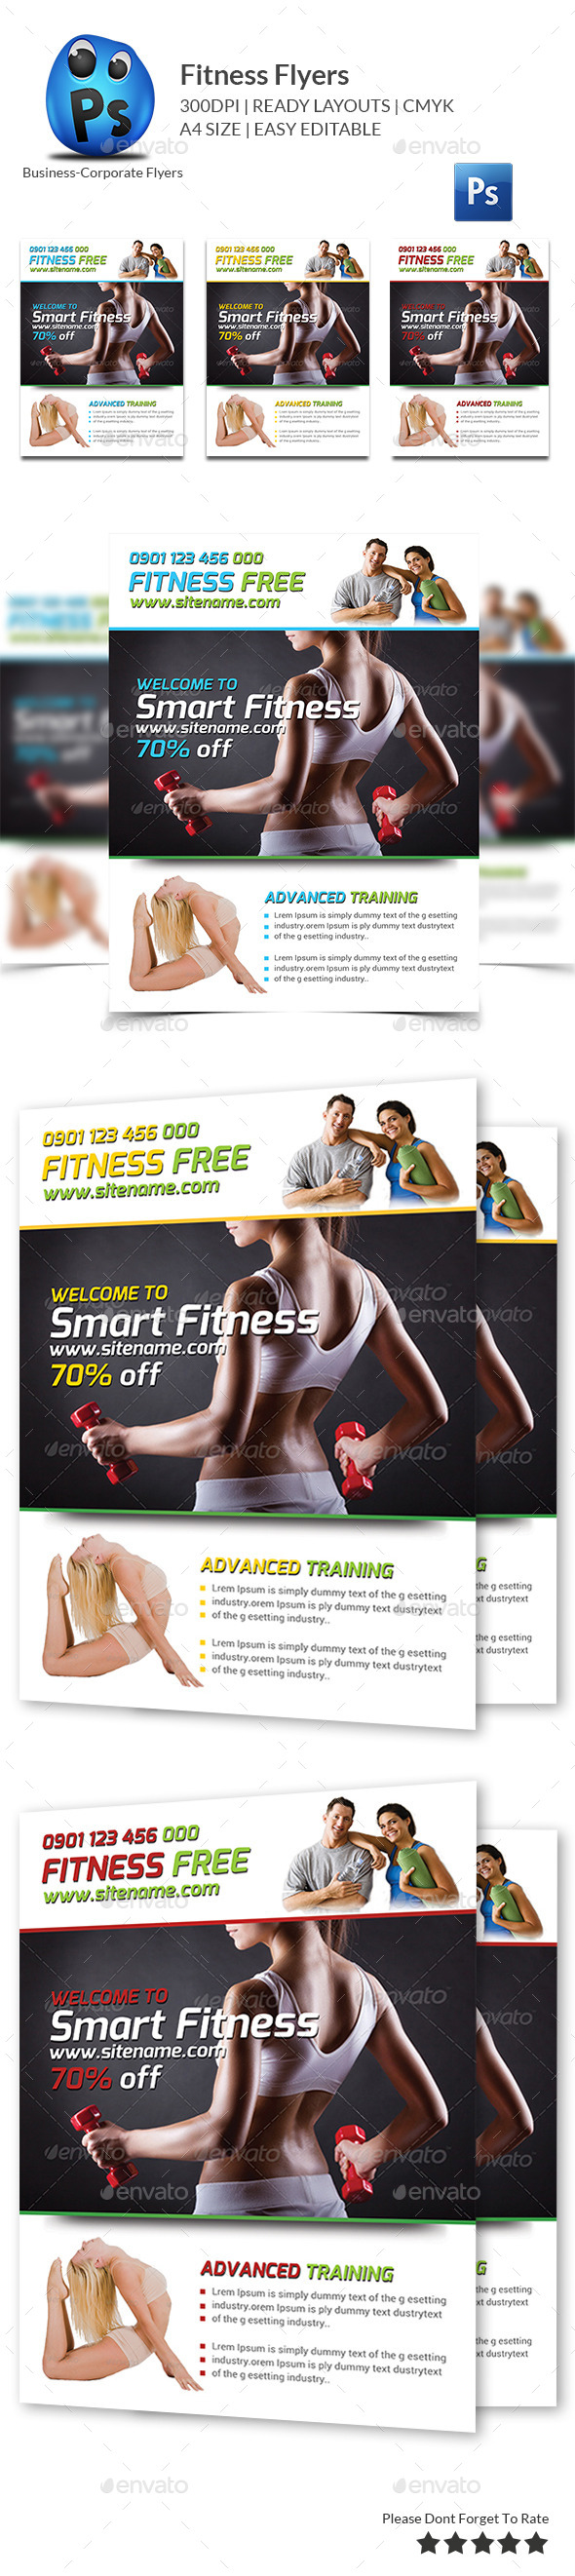 Fitness Flyer - Gym Flyer - Flyers Print Templates